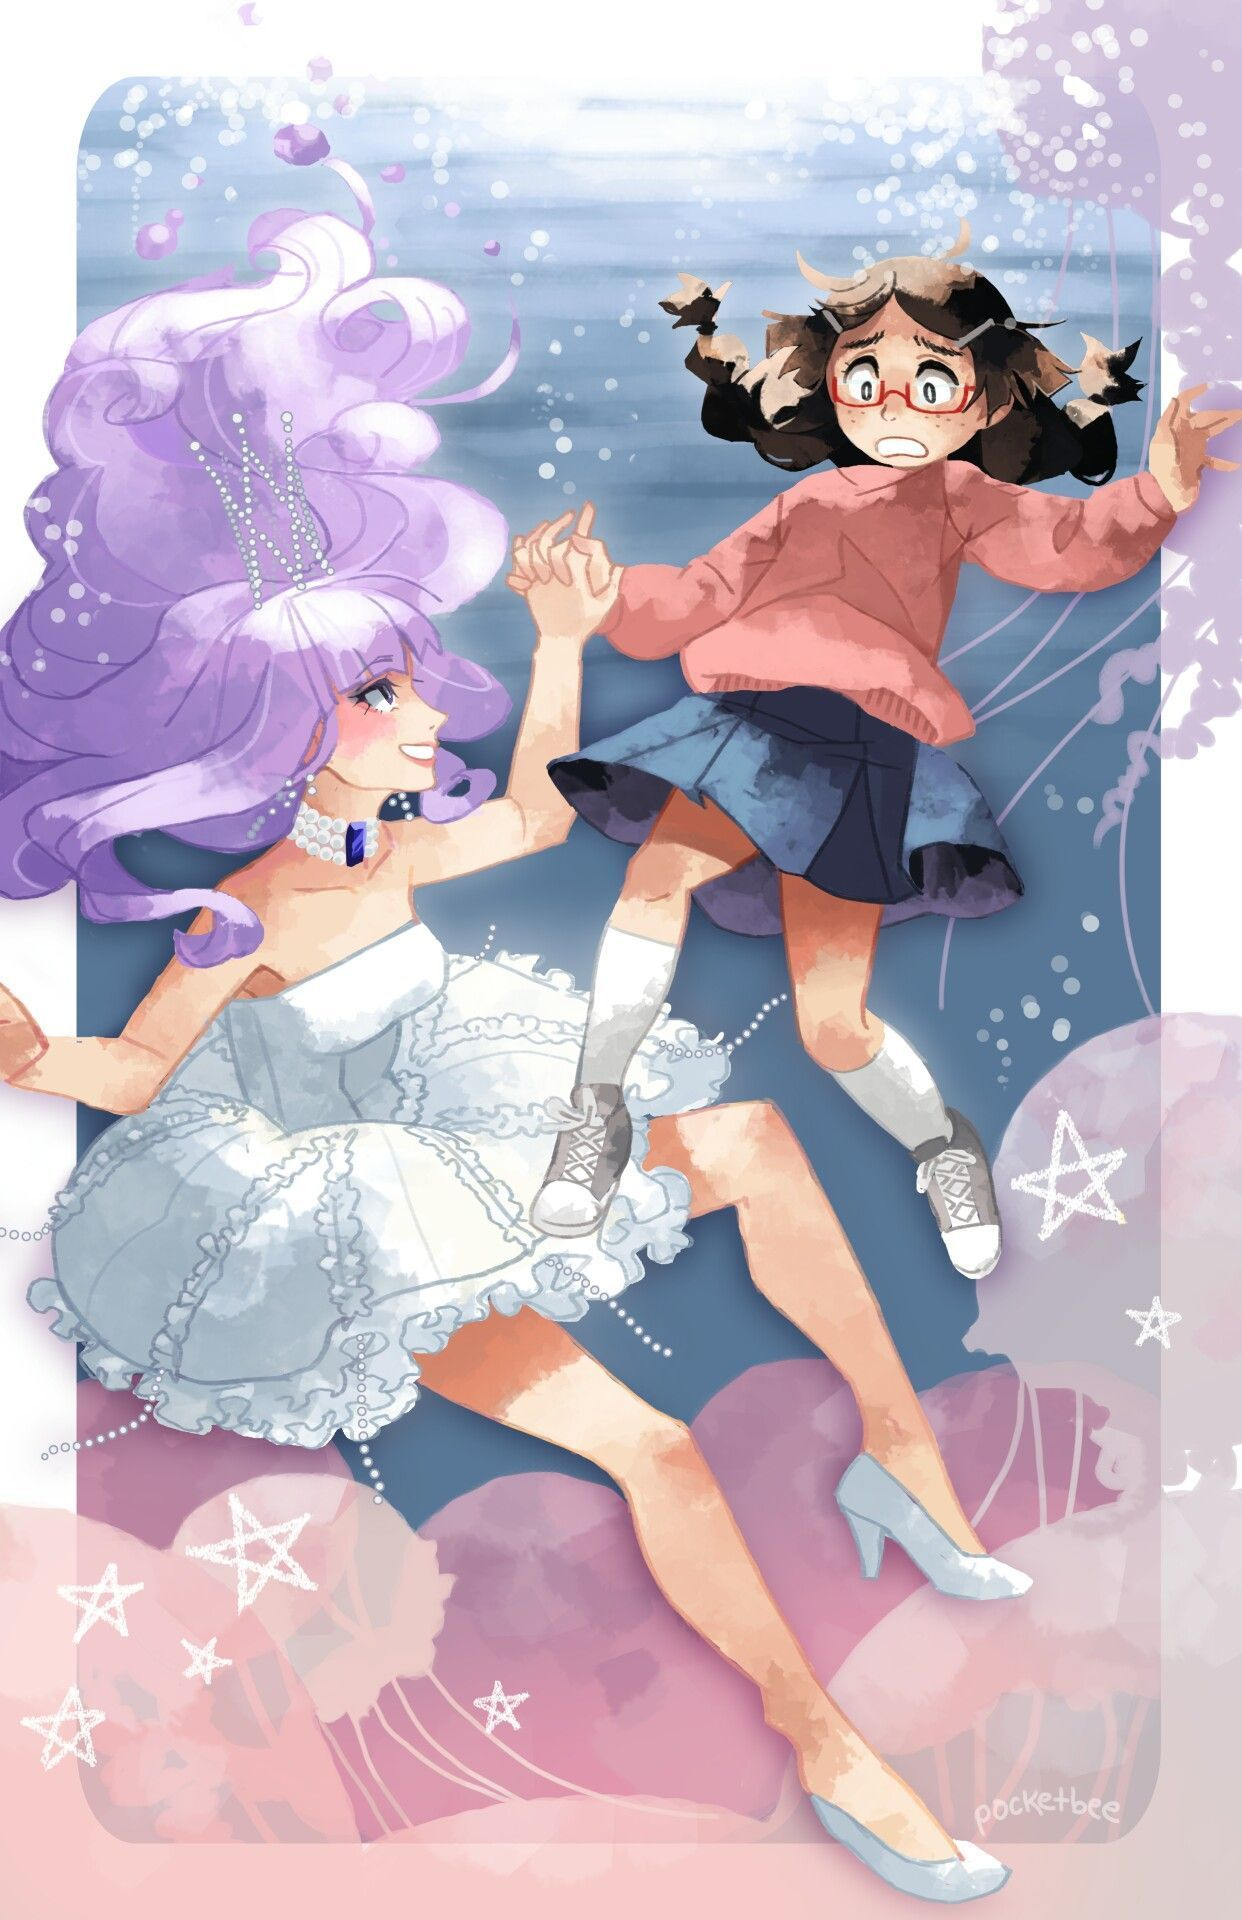 Jellyfish Jellyfish Costume Jellyfish Craft Jellyfish Decorations Jellyfish Drawing Jellyfish Facts In 2020 Princess Jellyfish Jellyfish Illustration Jellyfish